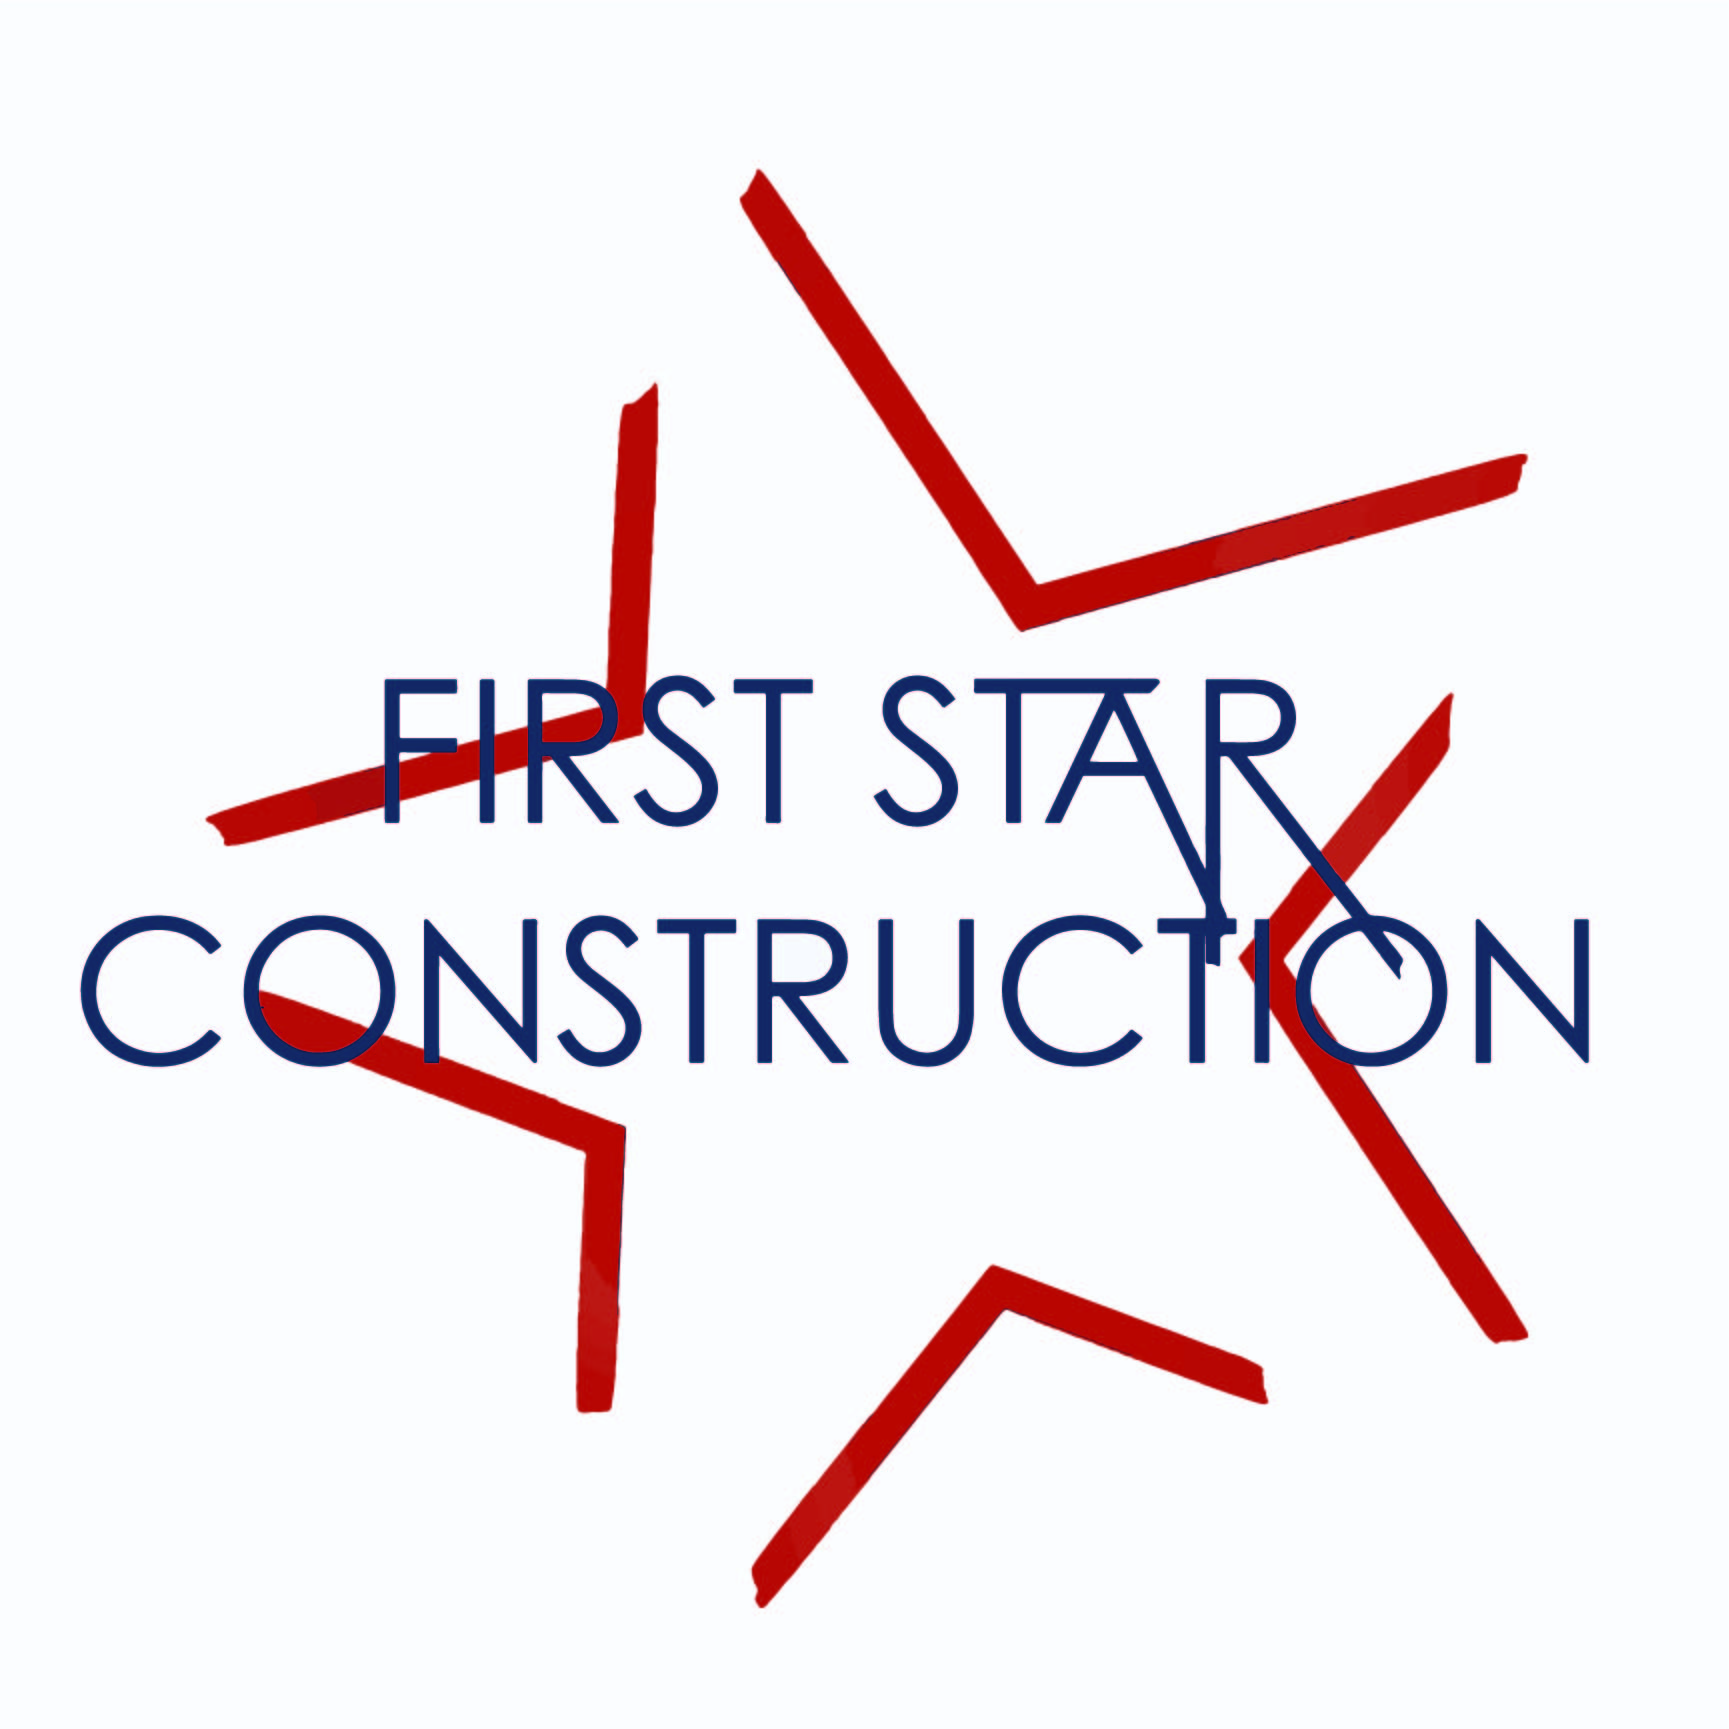 FIRST STAR CONSTRUCTION